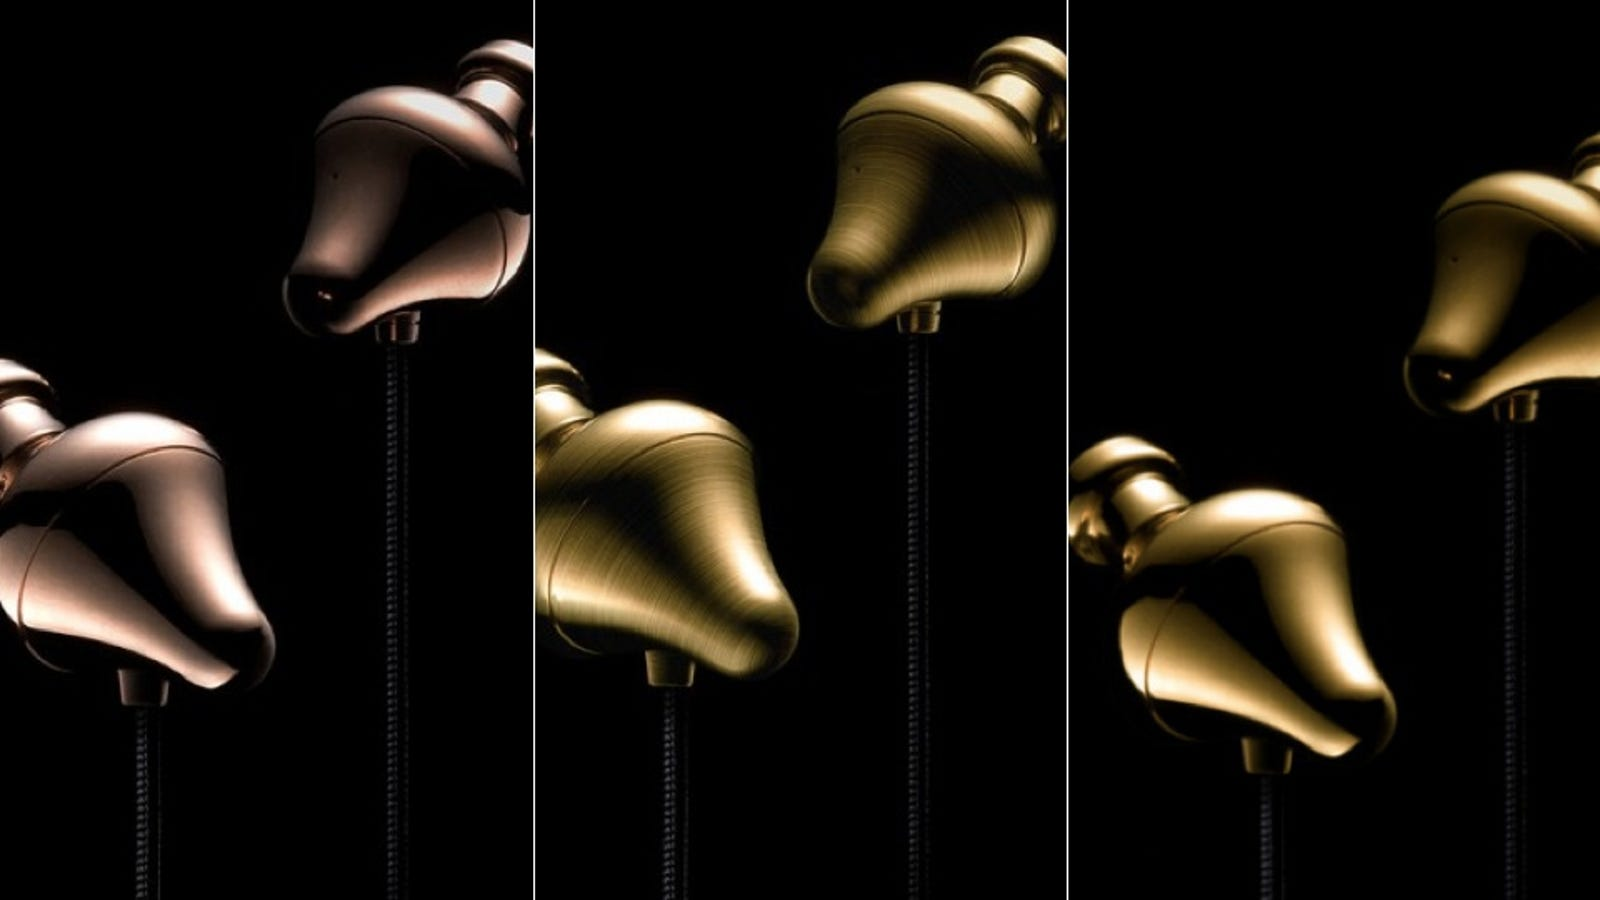 panasonic earbuds iphone x - Run Out of Things to Spend Money On? Here Are Some Gold-Plated Earbuds